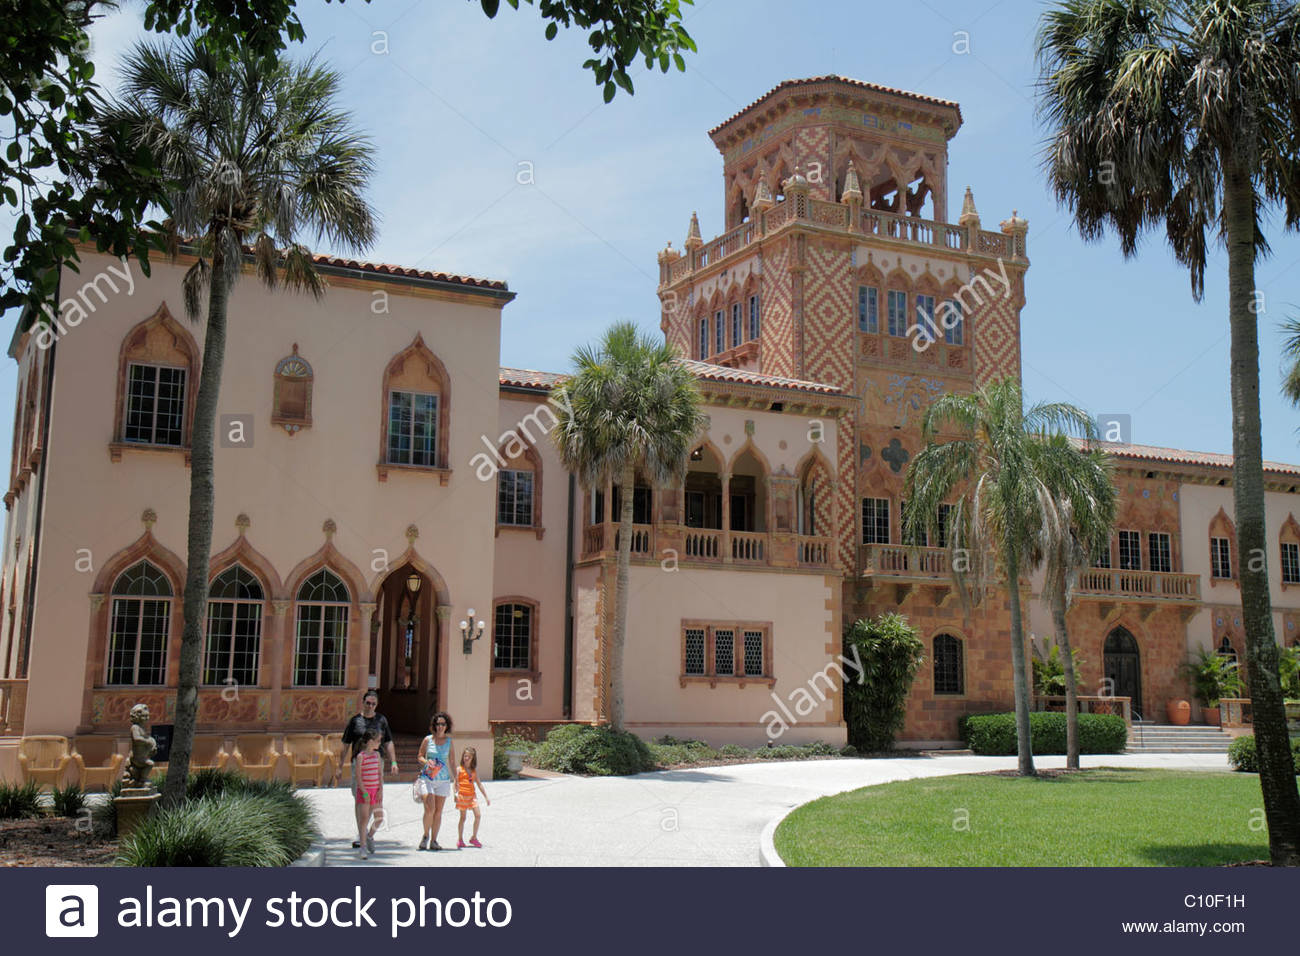 Sarasota Florida John and & Mable Ringling Museum of Art estate Ca d' Zan Mansion Venetian Gothic architecture - Stock Image